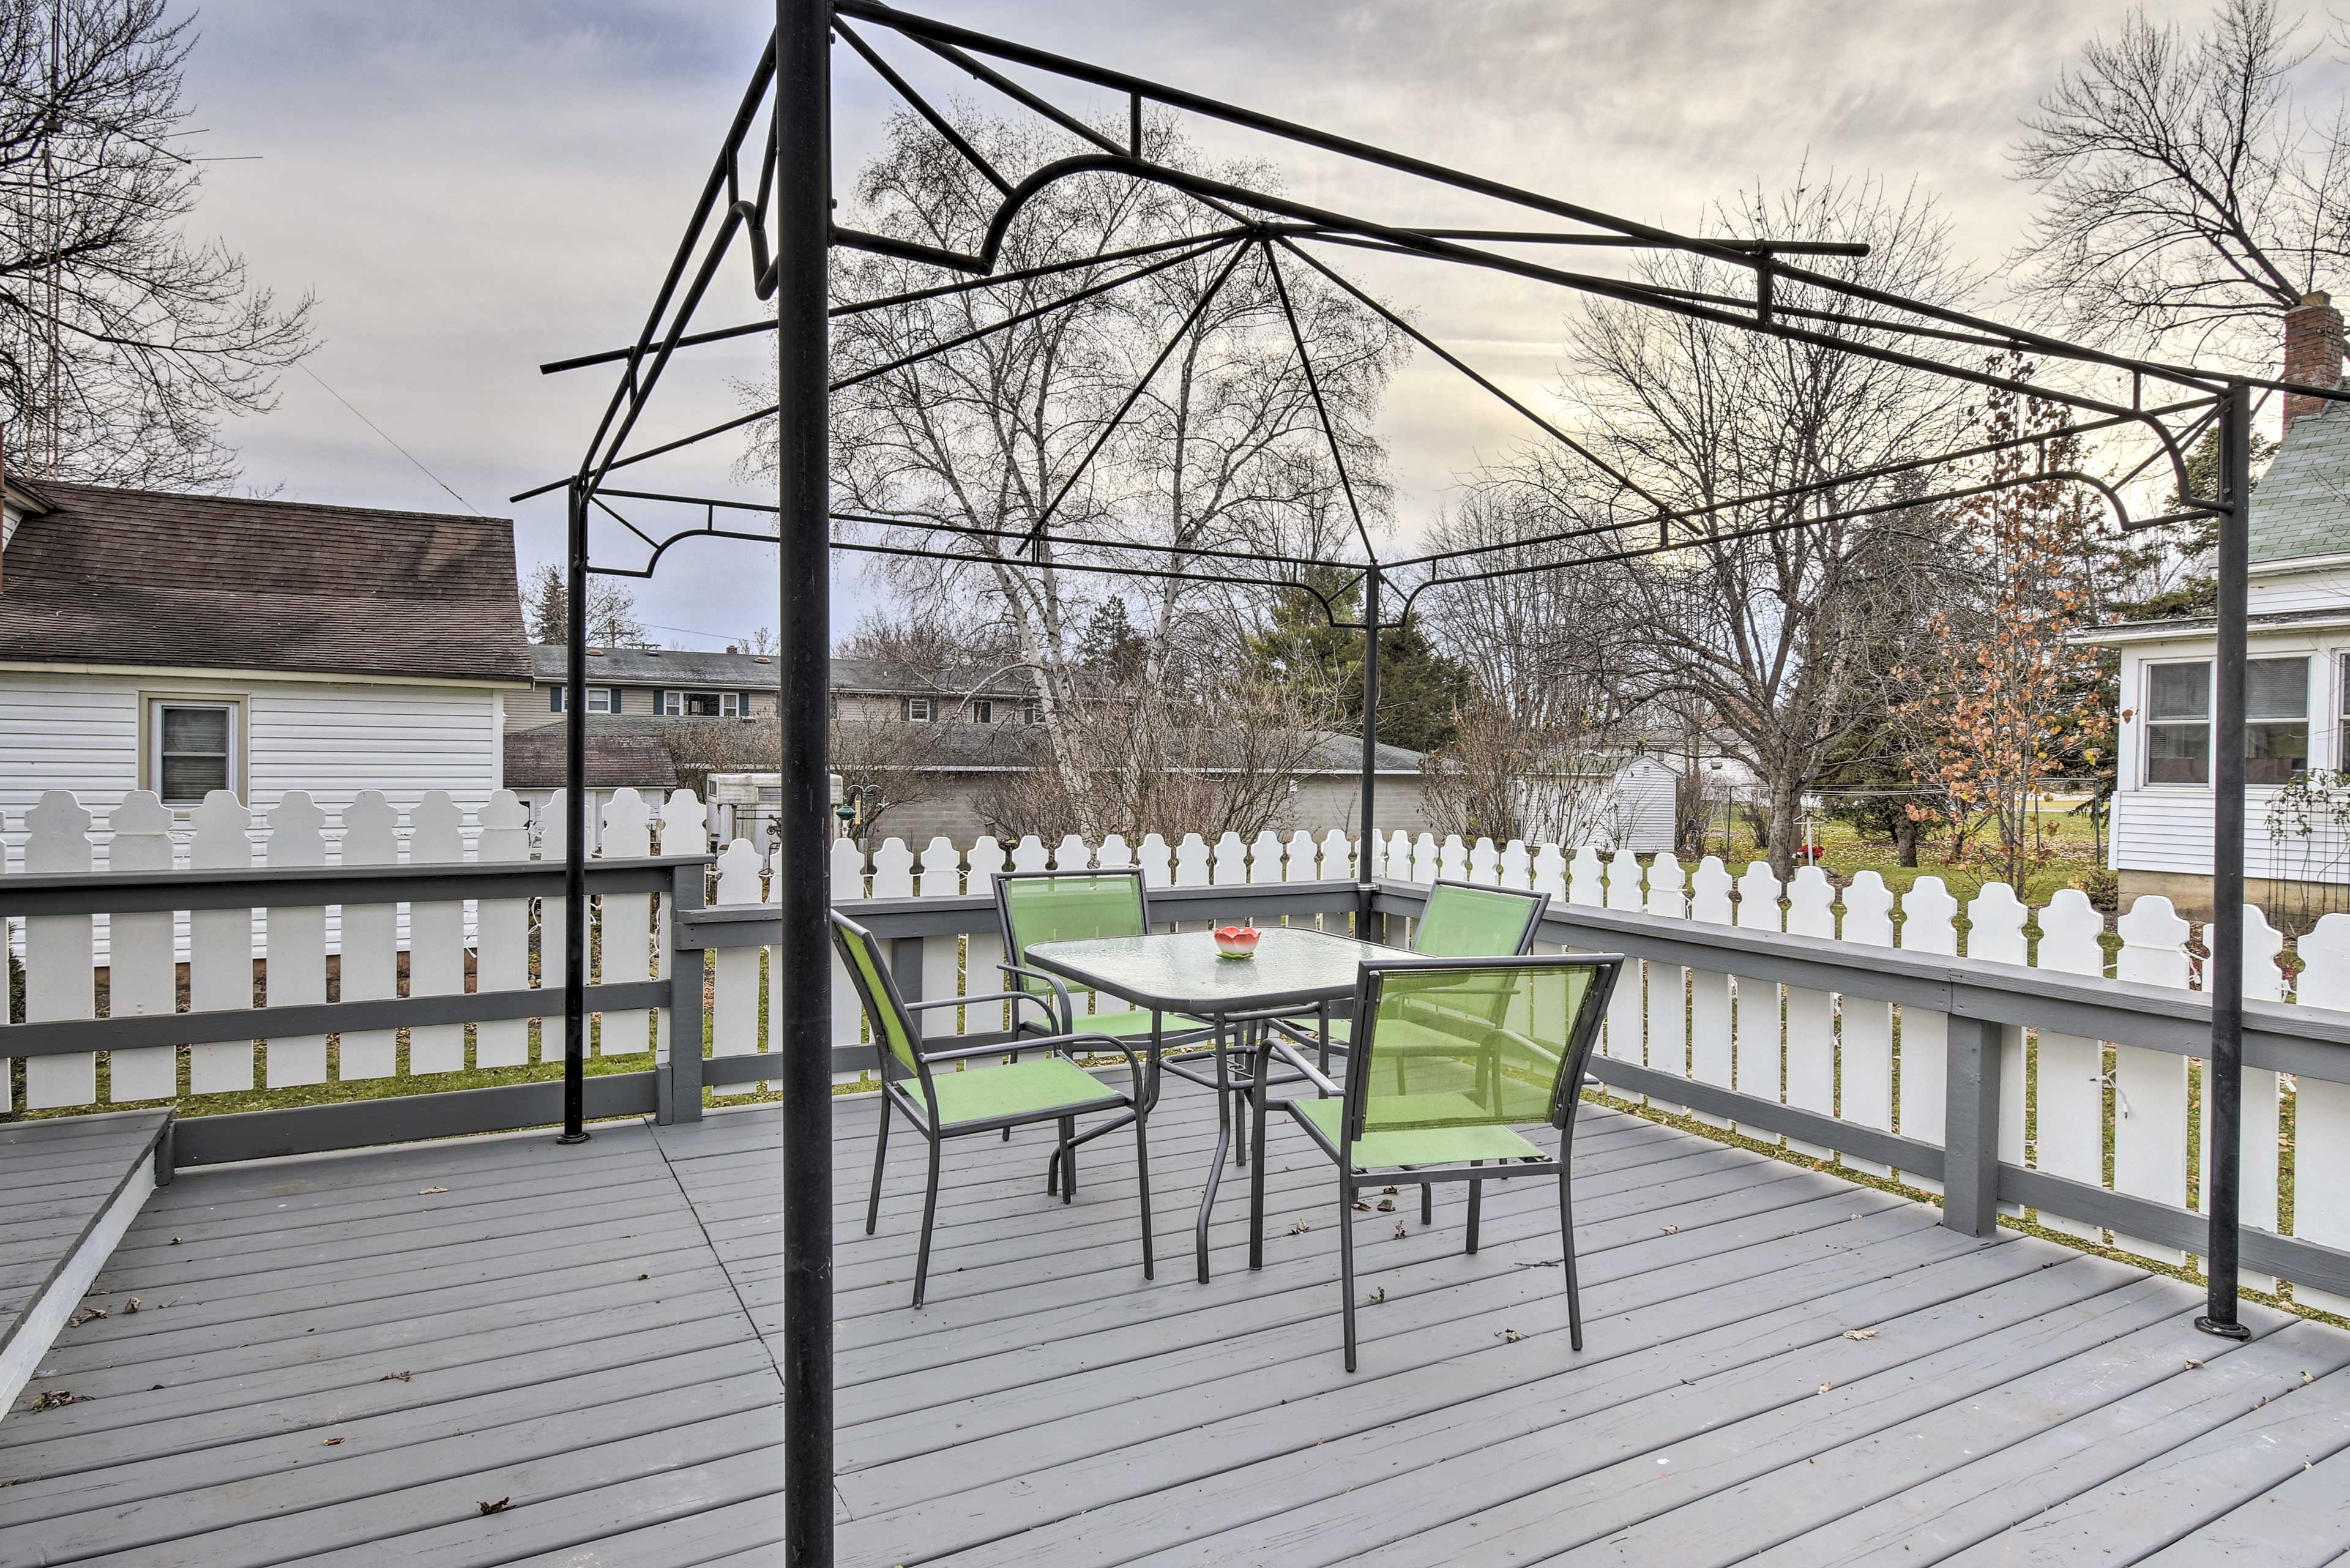 You'll love soaking up the sun on the furnished patio.